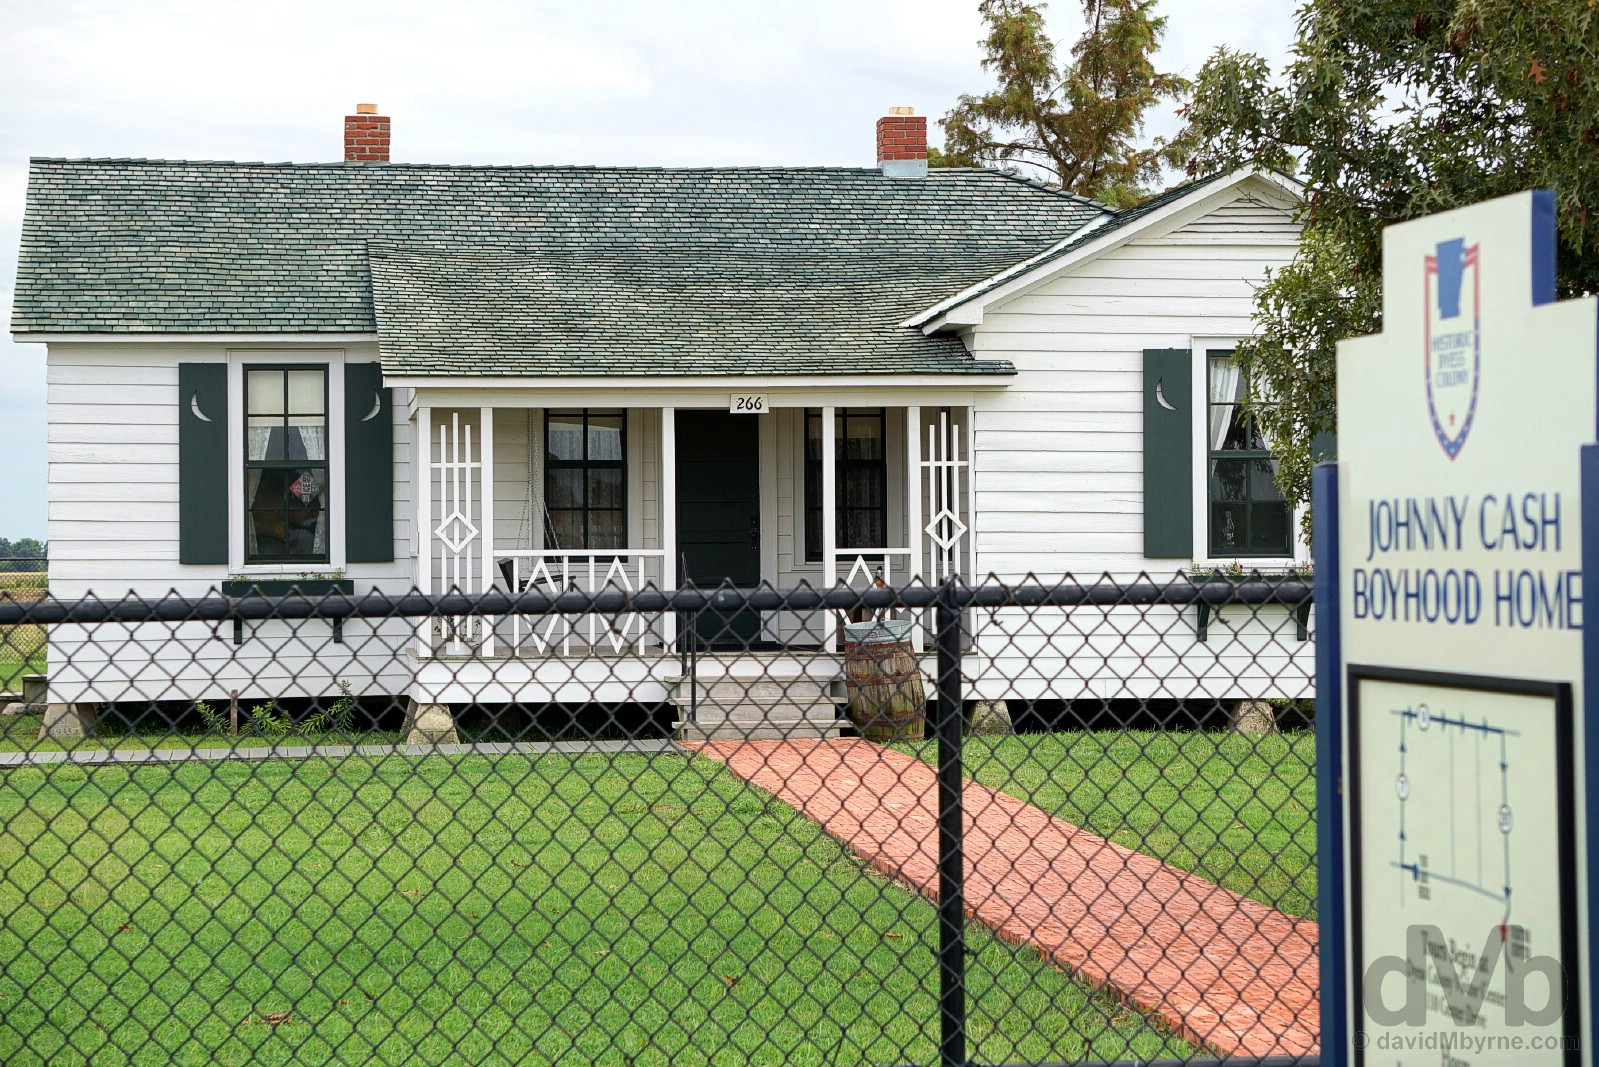 Johnny Cash Boyhood Home, Dyess, Arkansas, USA. September 18, 2016.